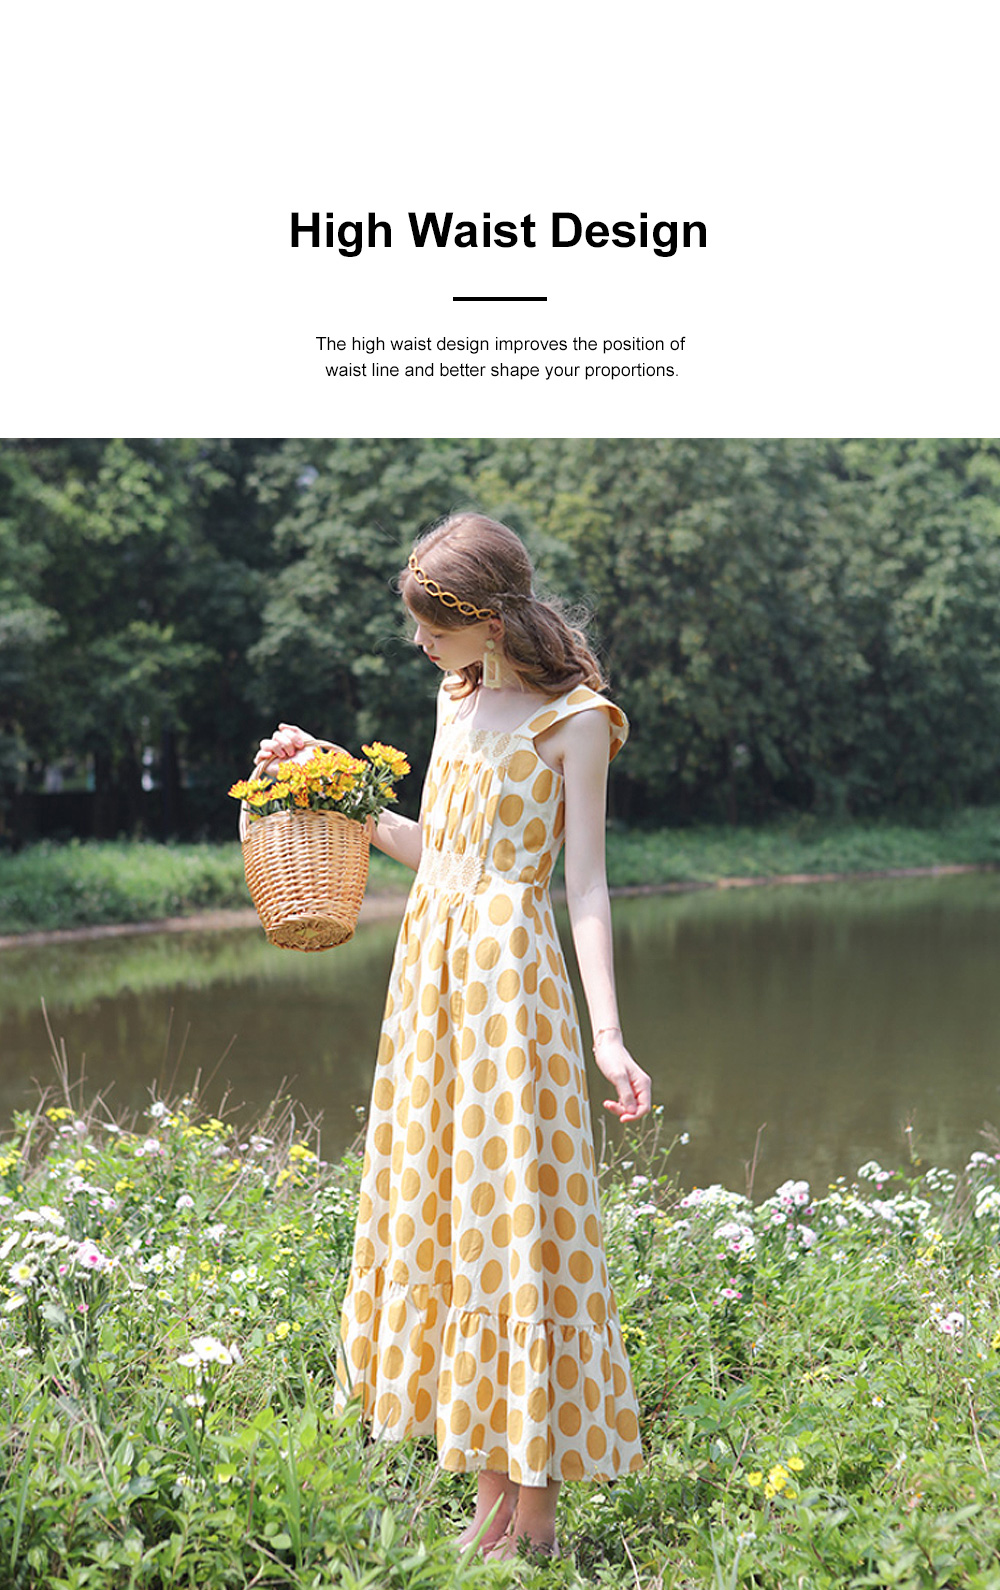 French Style Women's Casual Polka Dot Sleeveless Long Dress High Waist and Wide Boat Neck 3